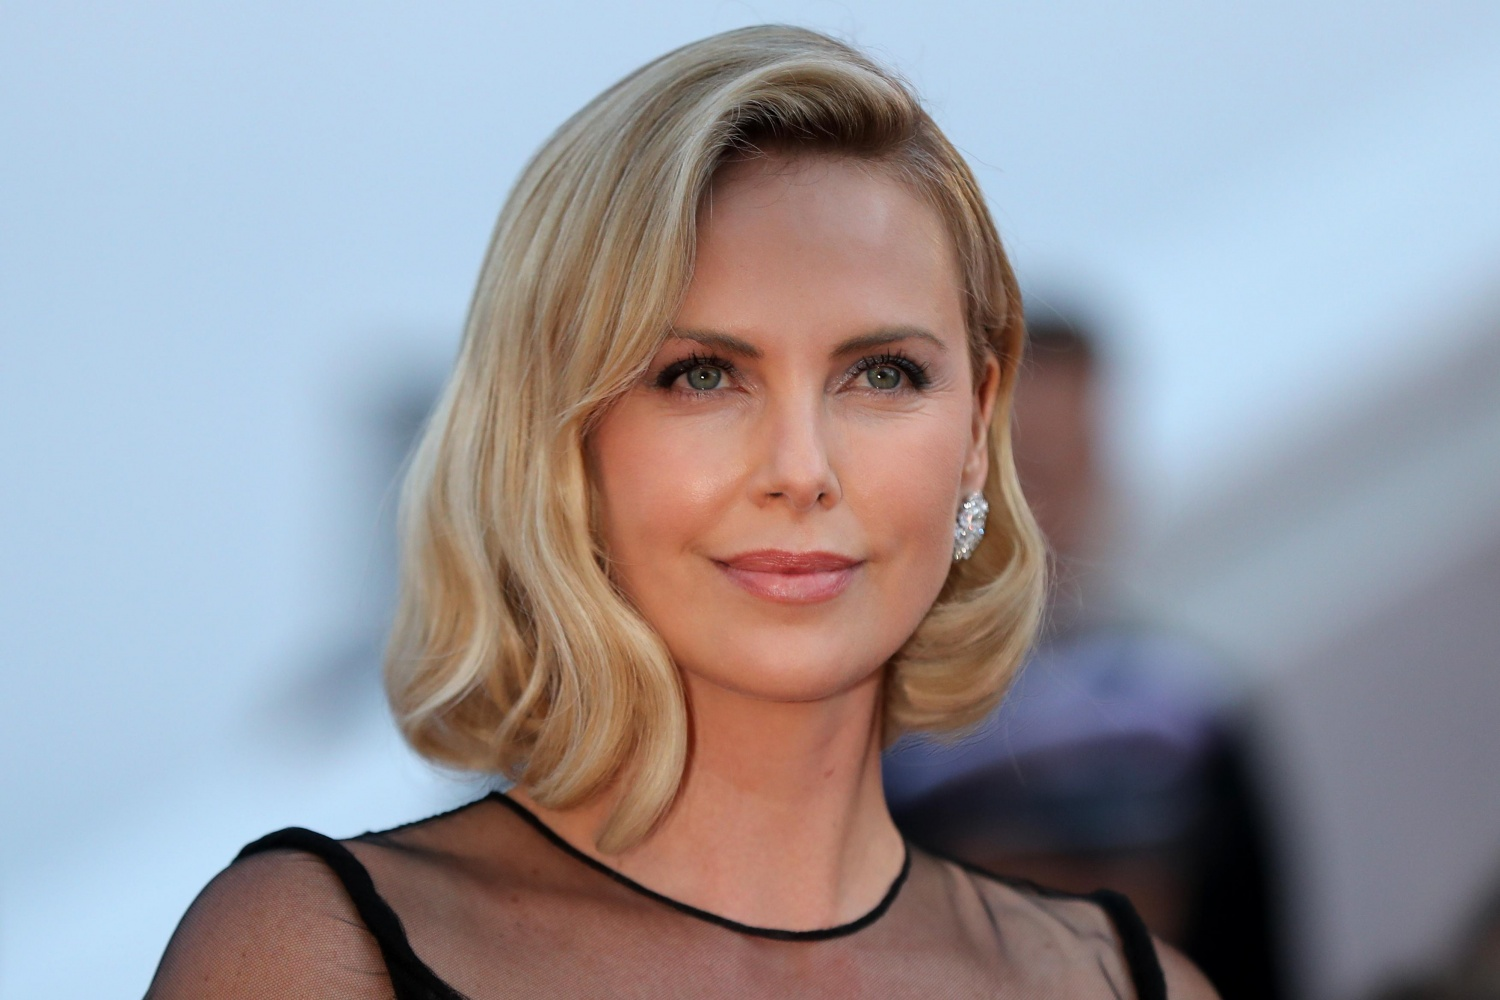 Charlize Theron, raised during apartheid, fears for her black children in America